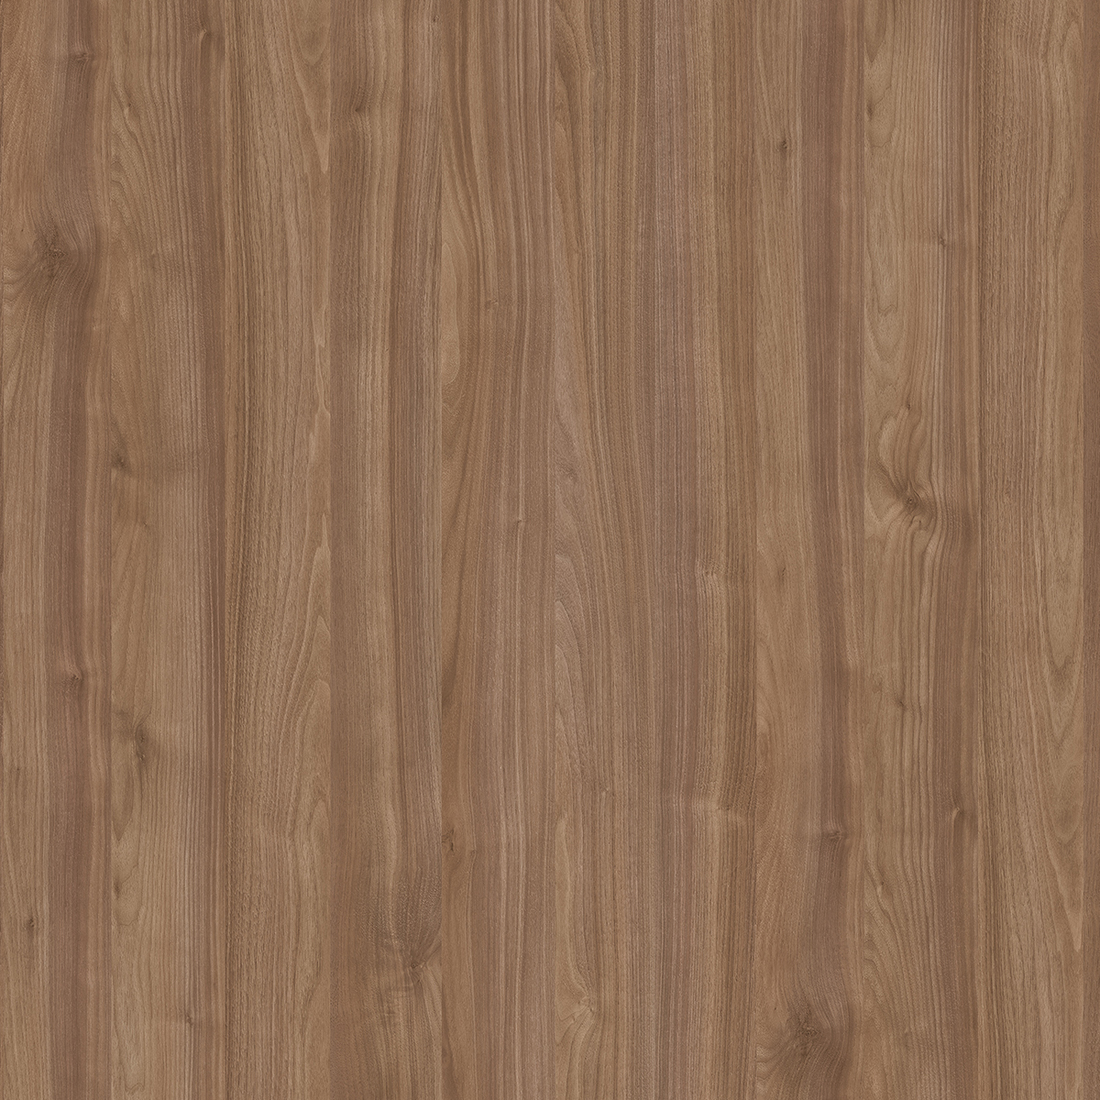 Krono K009PW Dió Dark Select Walnut bútorlap 18 mm